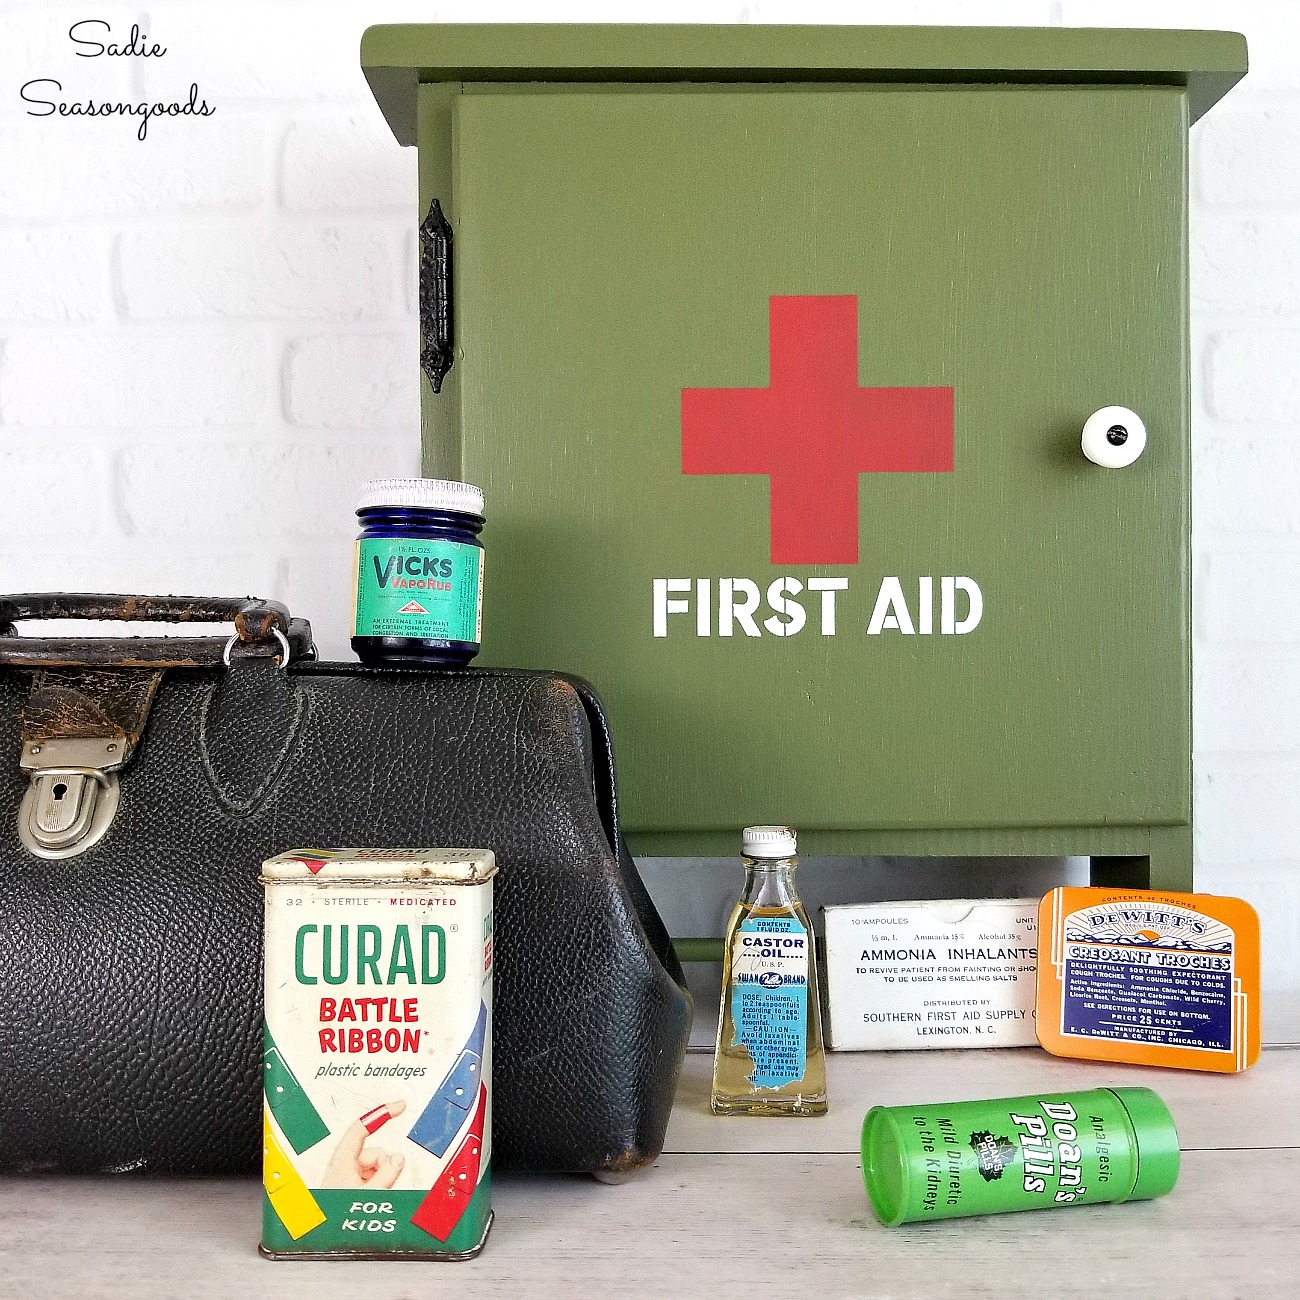 Vintage inspired military stenciled first aid kit by Sadie Seasongoods, featured on Funky Junk Interiors